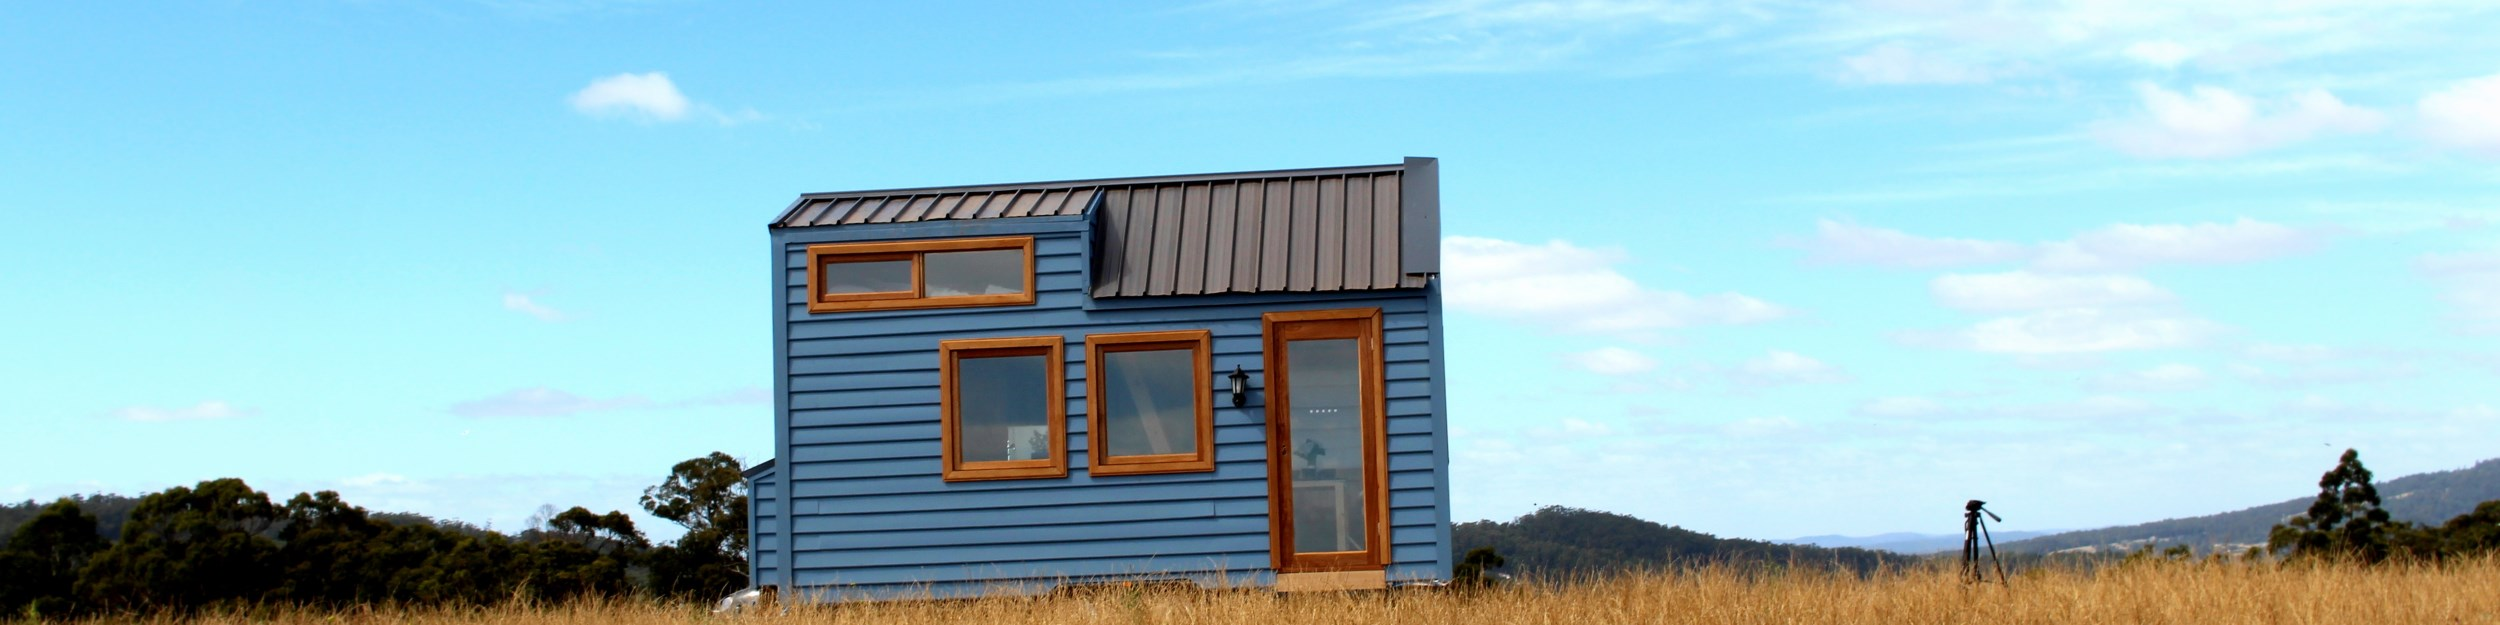 Tiny House Finance Finding finance solutions for Tiny House